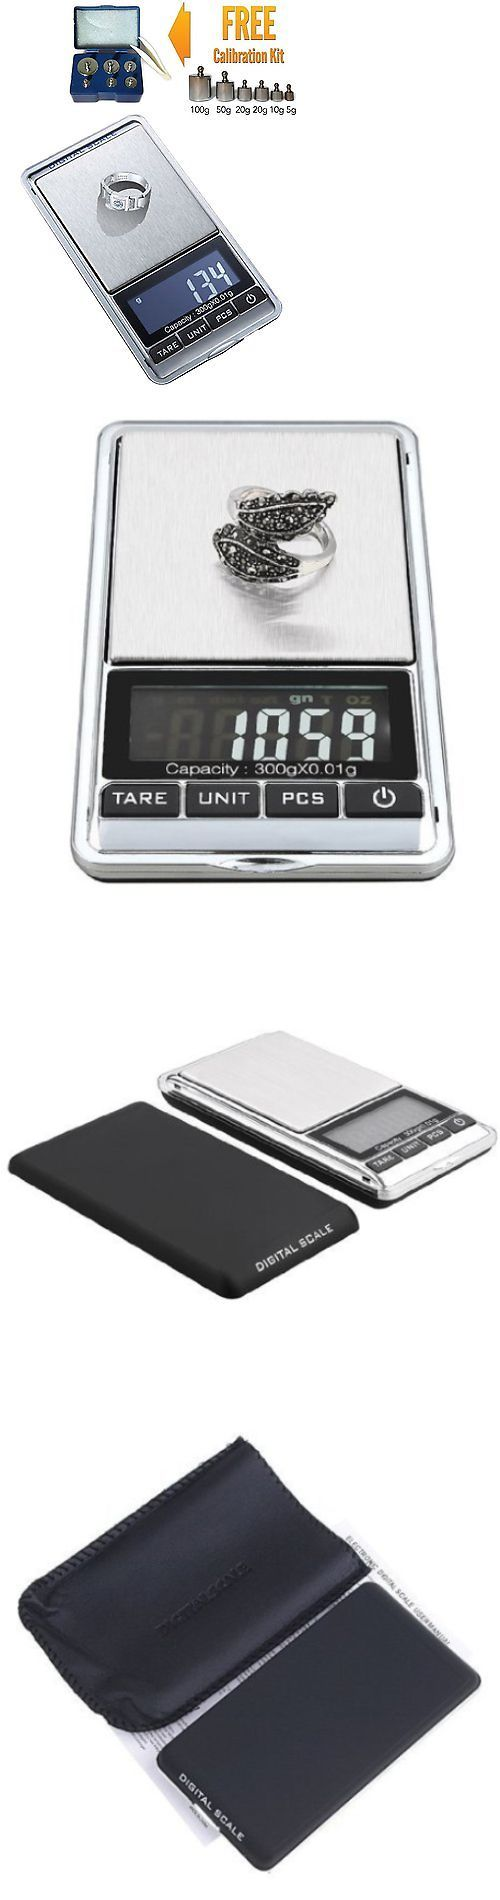 Scales 34088: 300G X 0.01G Mini Digital Jewelry Pocket Gram Scale Lcd + M2 Calibration Weight -> BUY IT NOW ONLY: $30.01 on eBay!